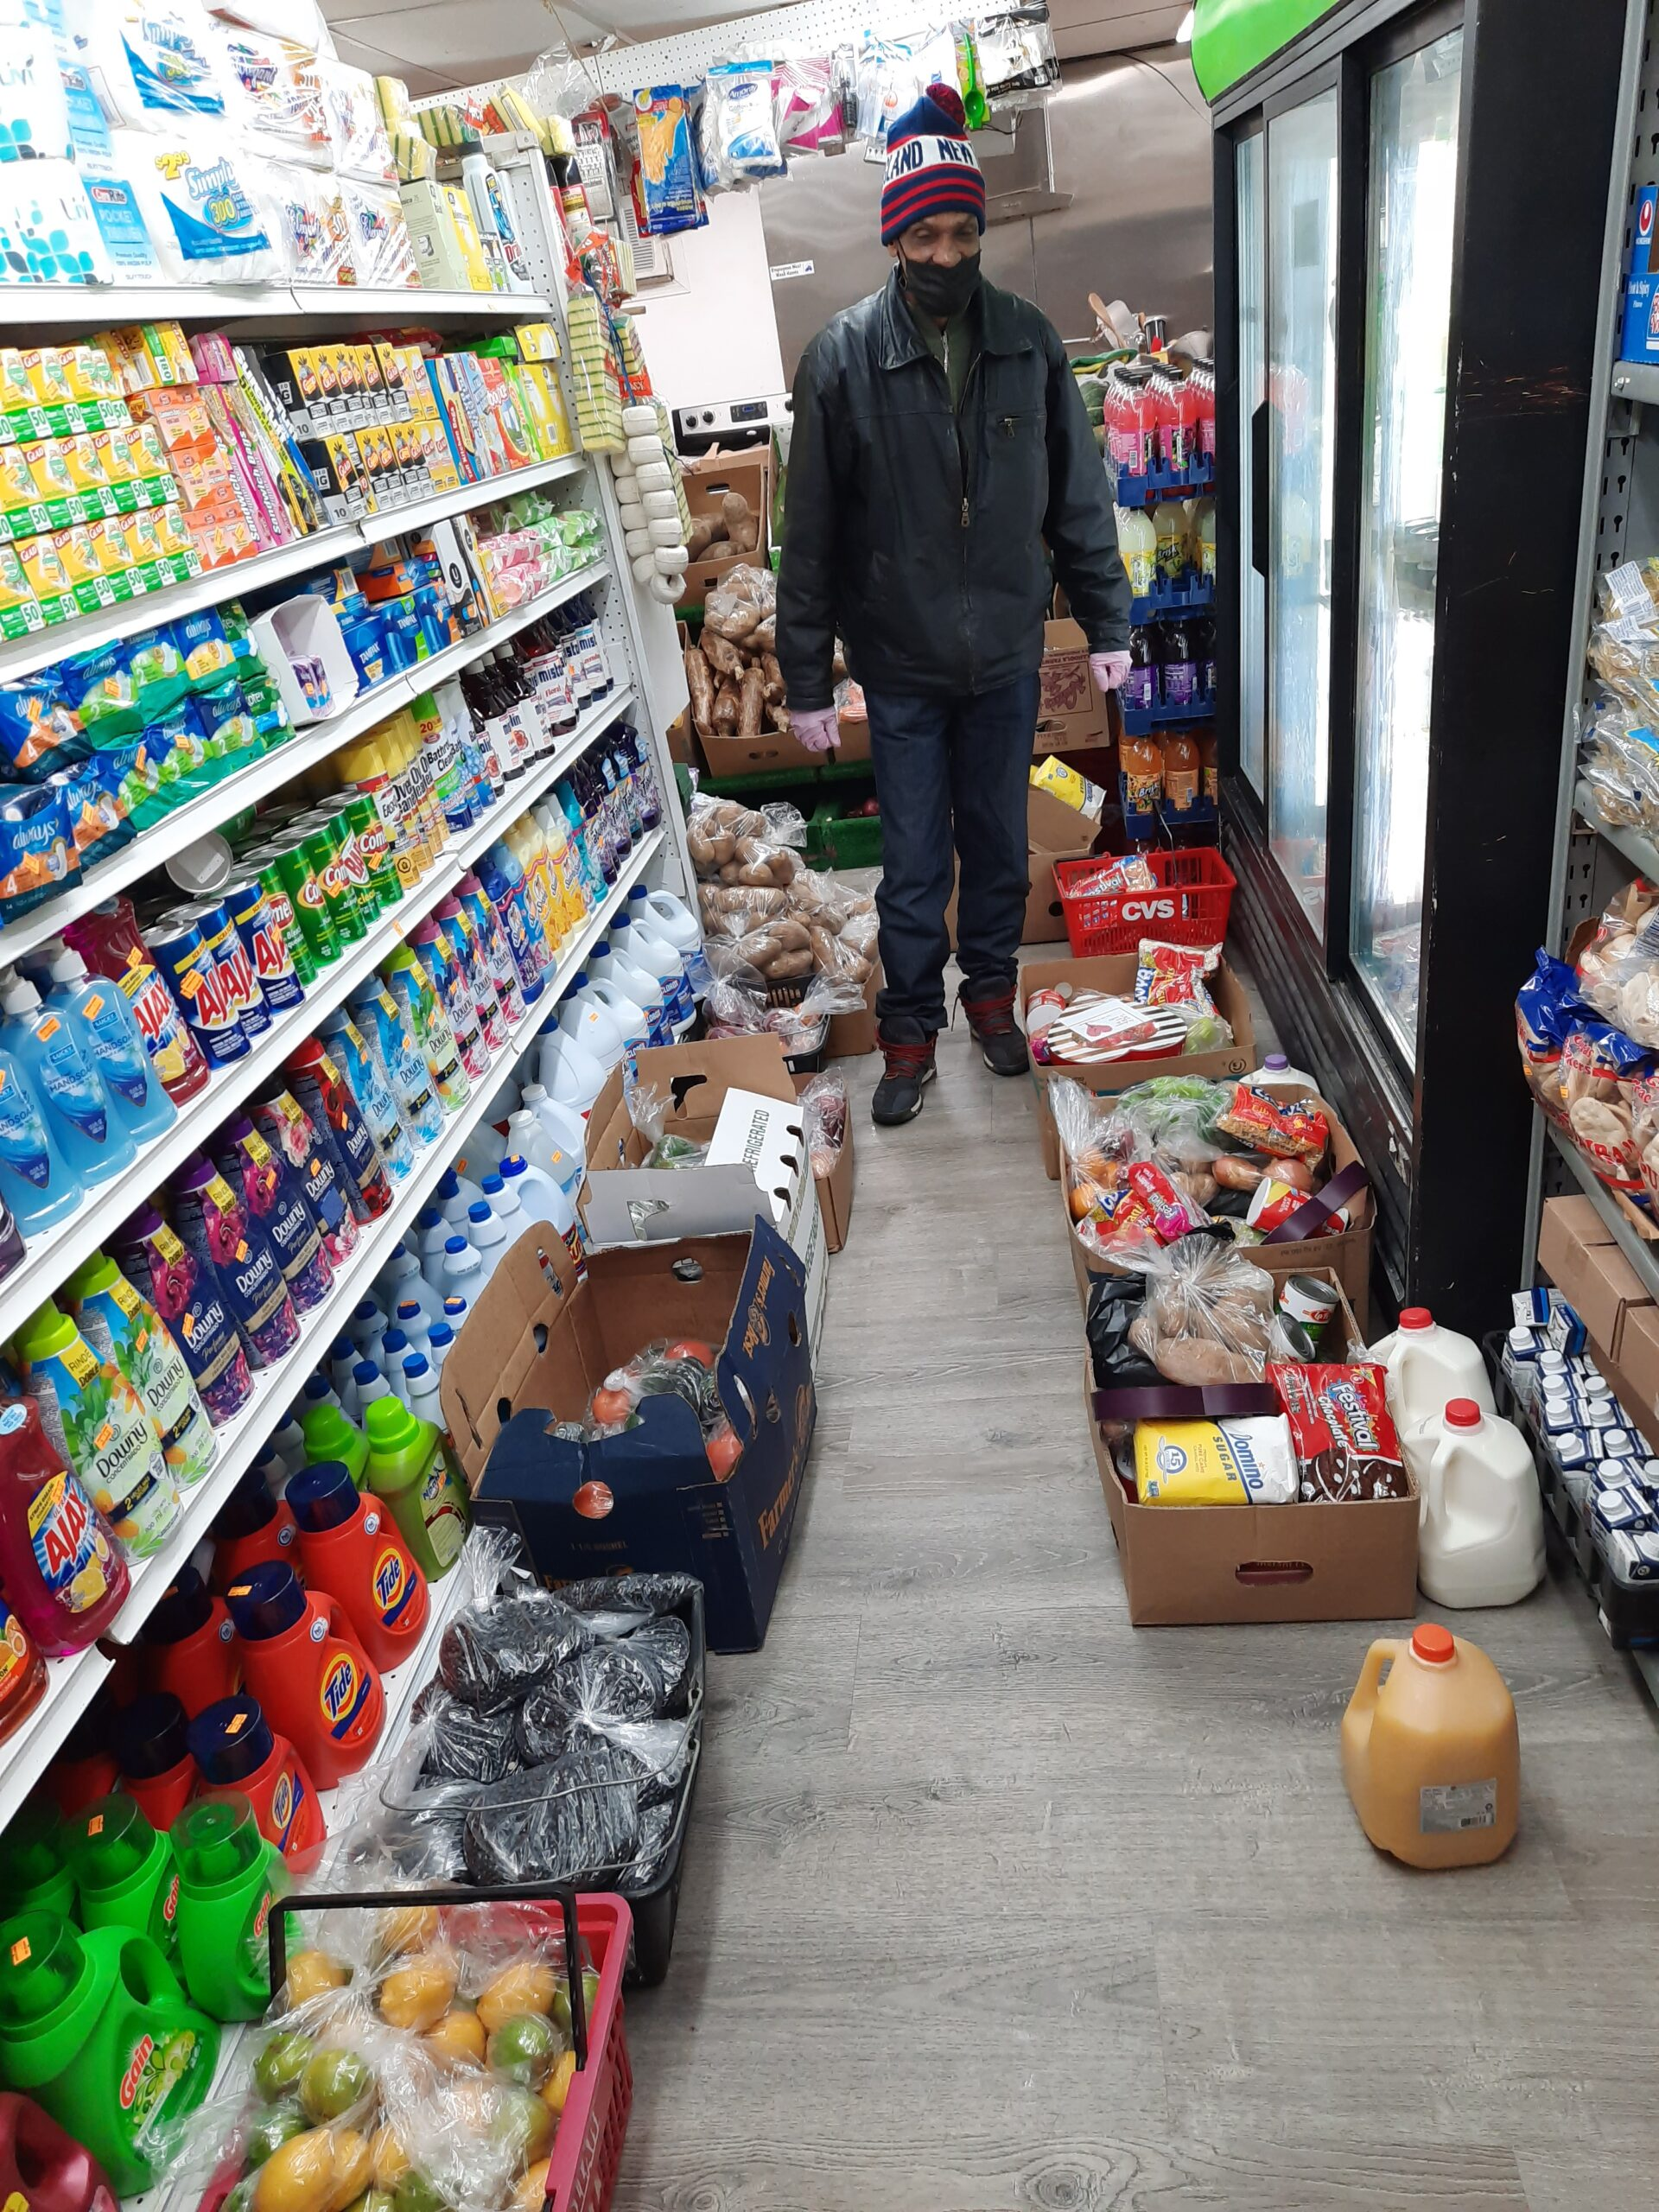 Image of a man wearing a black beanie, black jacket, and jeans standing at the far end of a grocery store facing the camera. To the left are shelves of bottles and to the right are freezers. In the floor, groceries are piled up to be packed into a car and sent to food insecure families in Lawrence, MA.